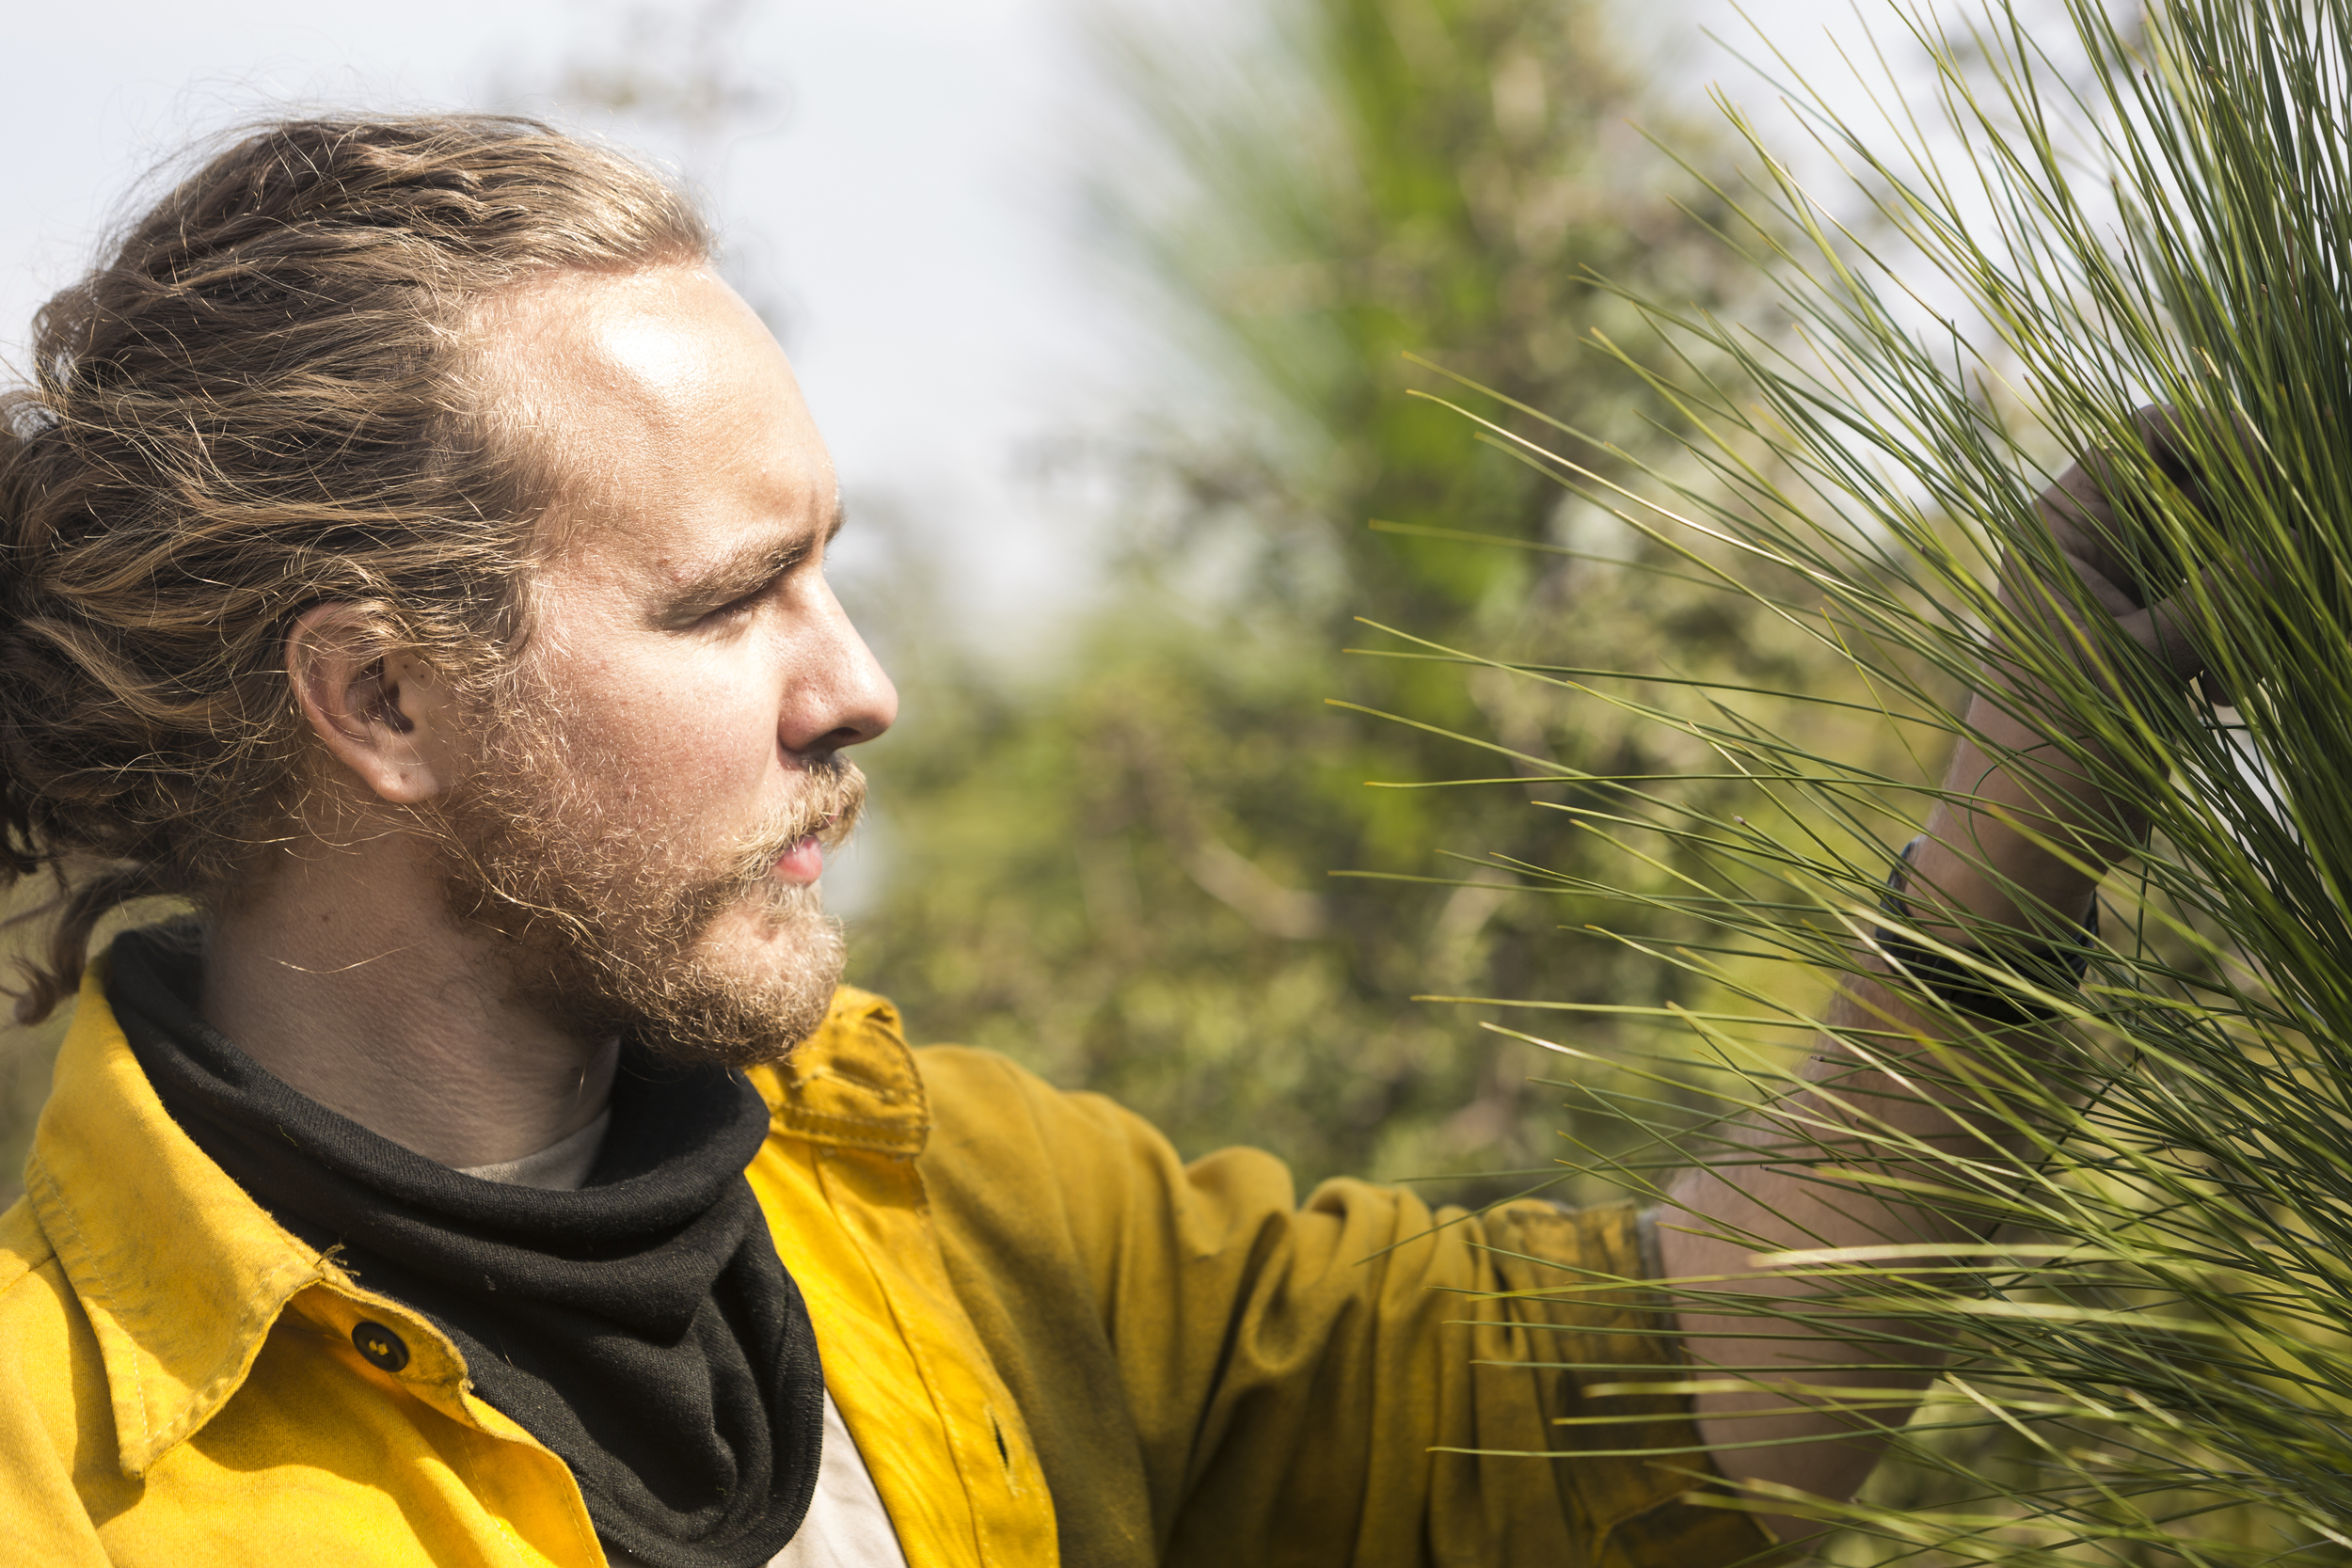 Kottke examining a young Longleaf Pine